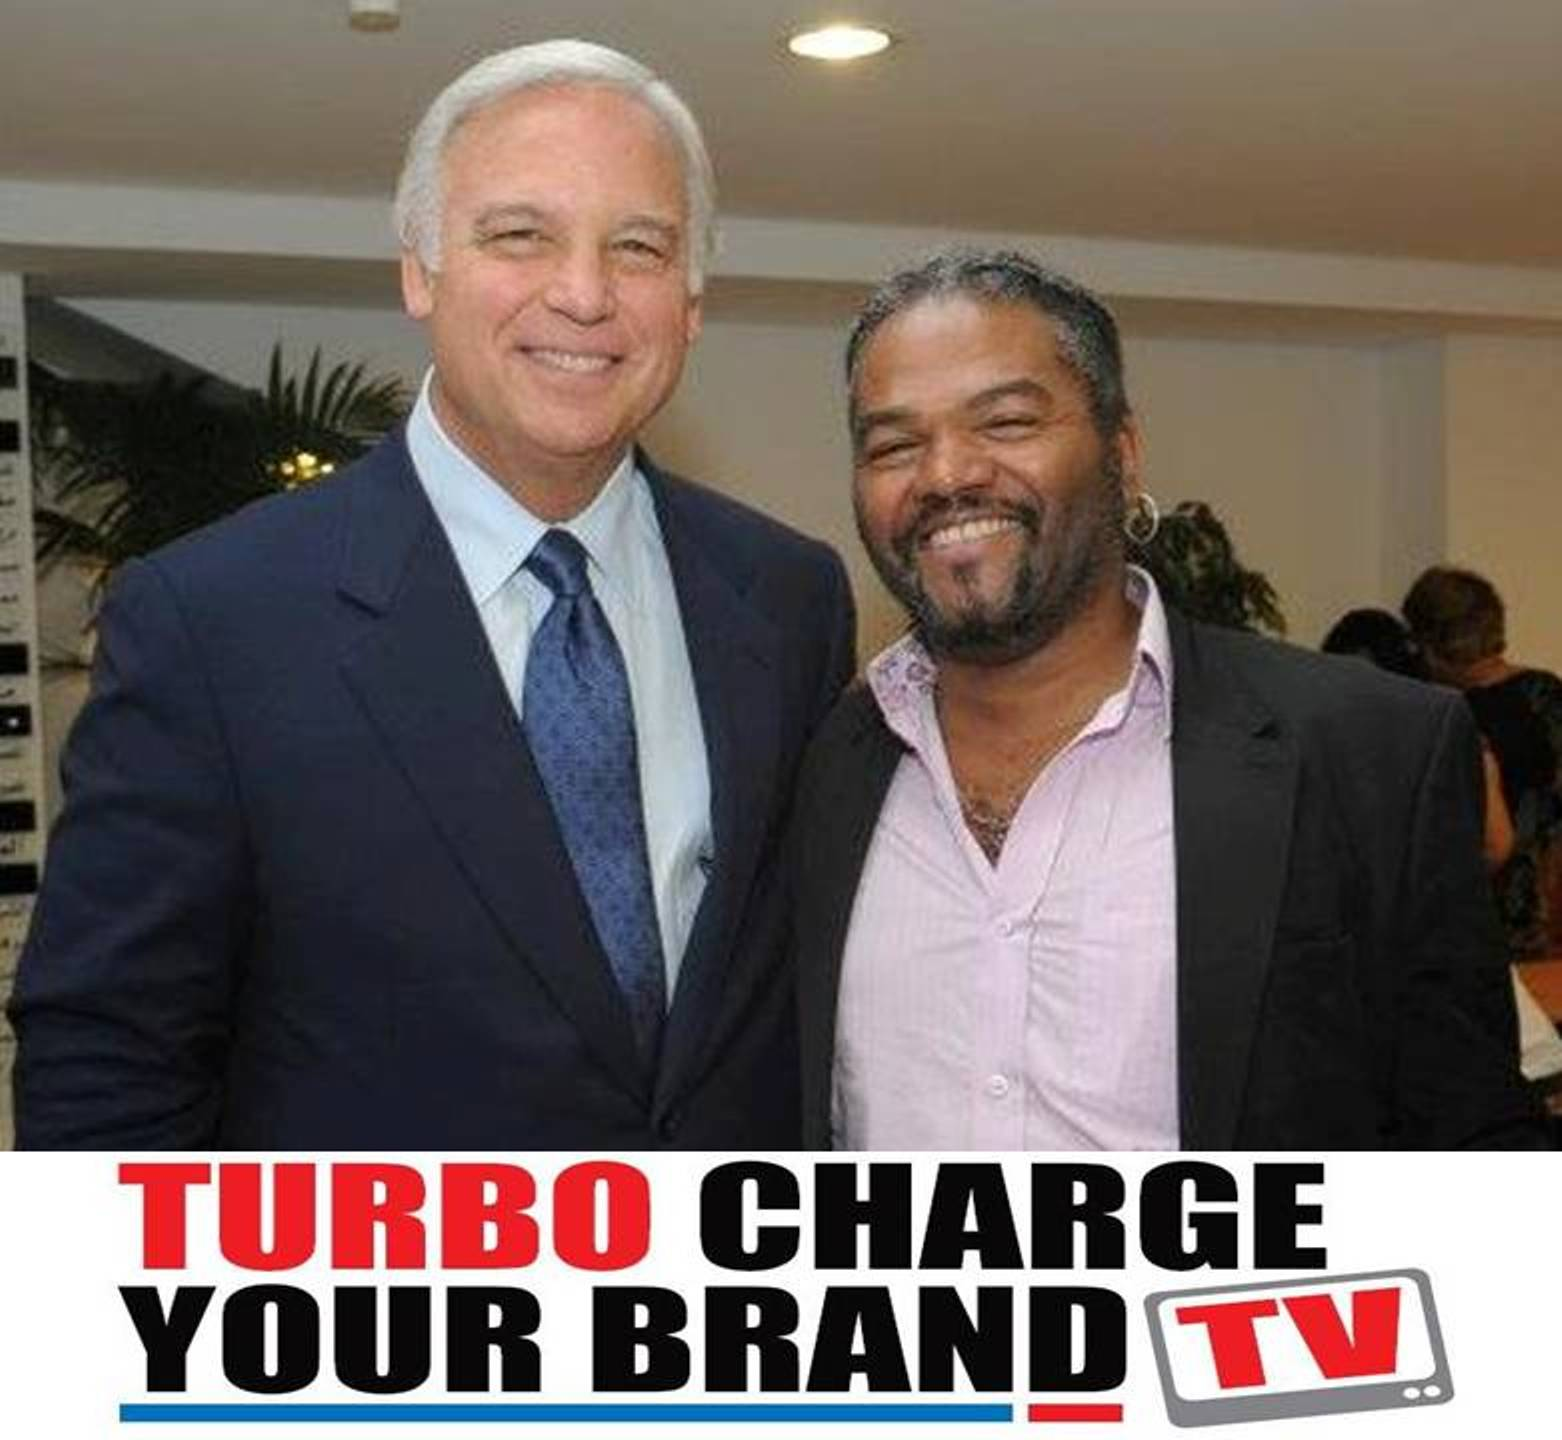 Jack Canfield - America's Number 1 Success Coach (and me),